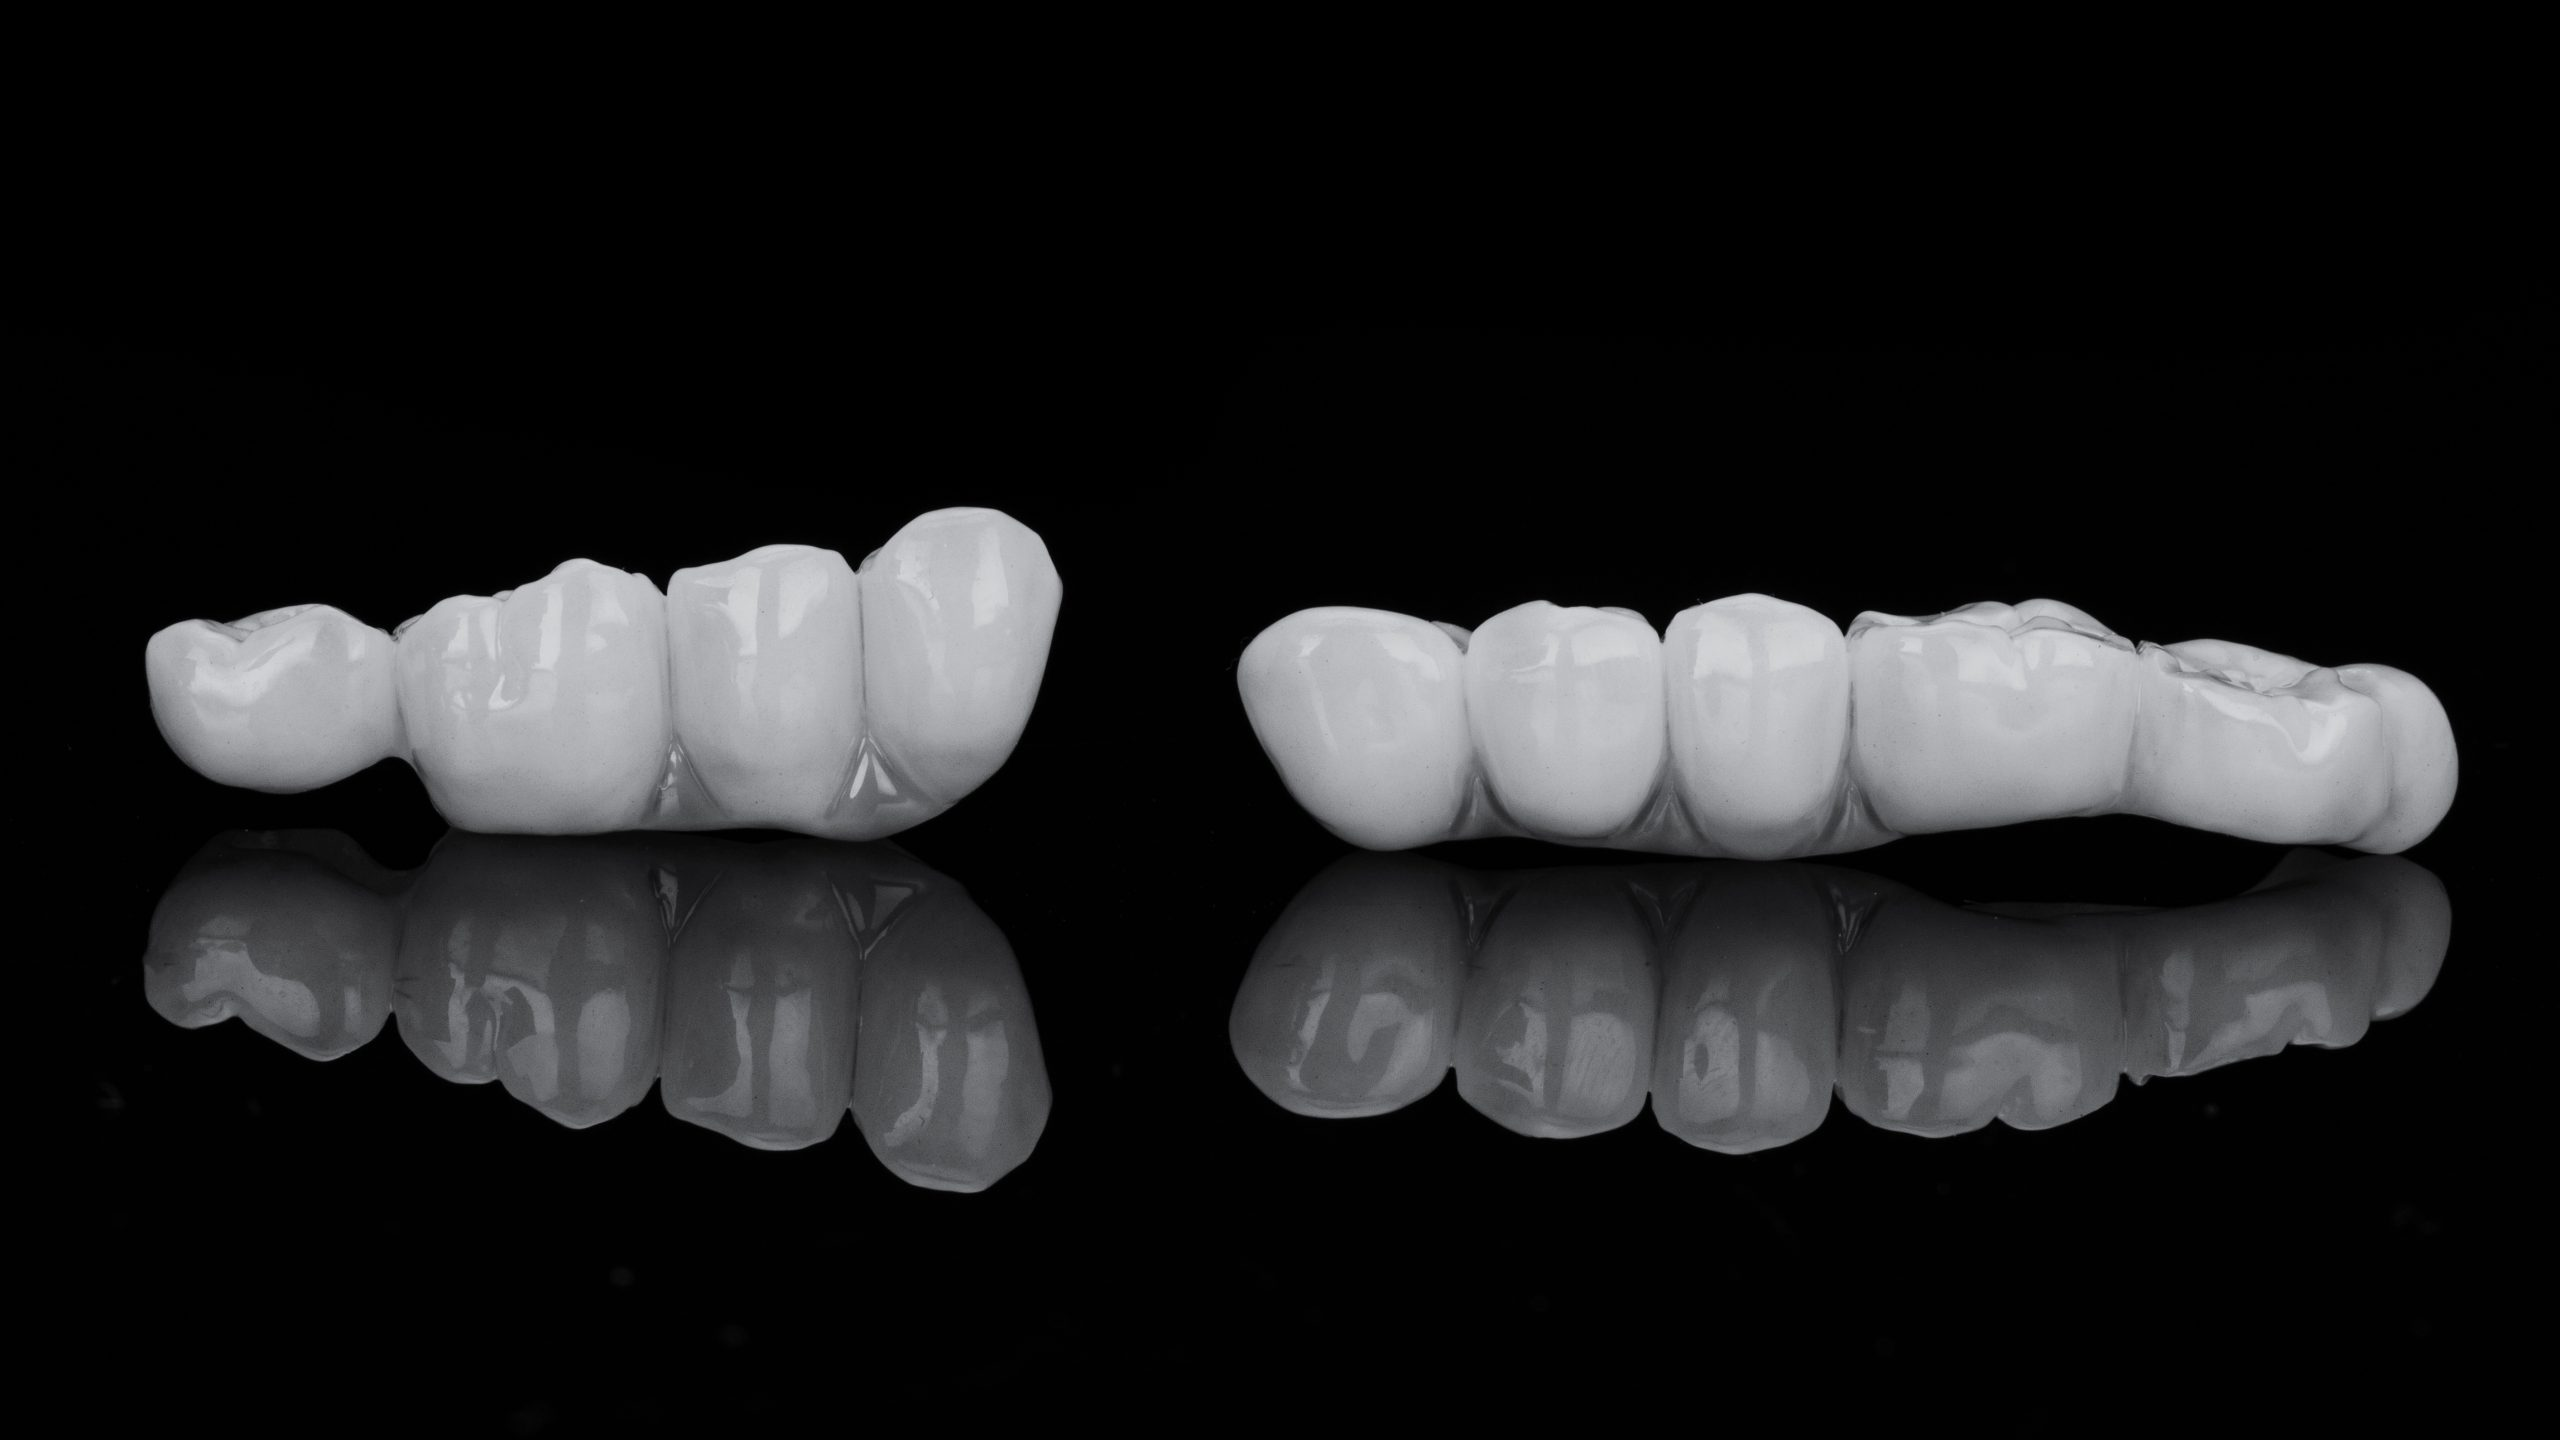 two dental bridges for the restoration of chewing teeth, photo in black and white style